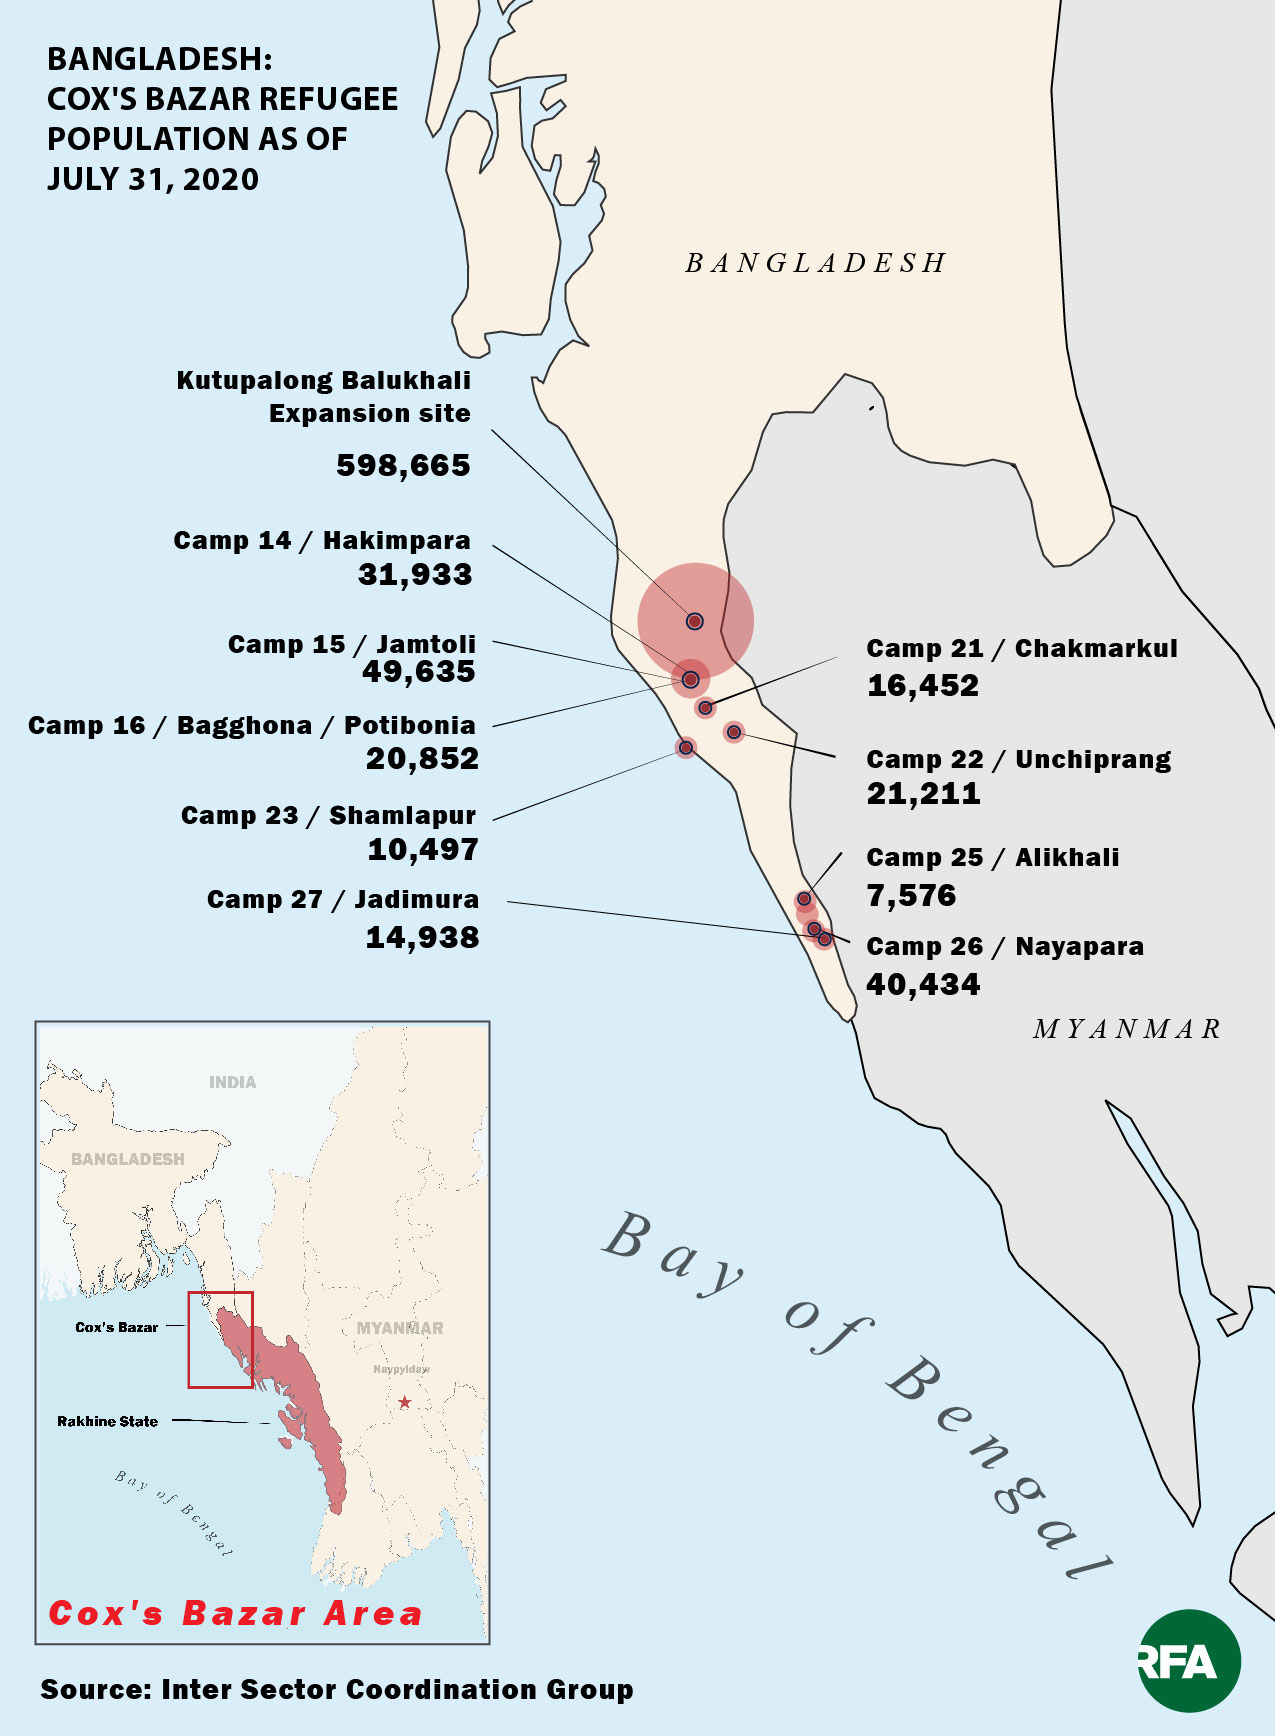 A map of refugee camps in Cox's Bazar district, southeastern Bangladesh, and their respective populations.